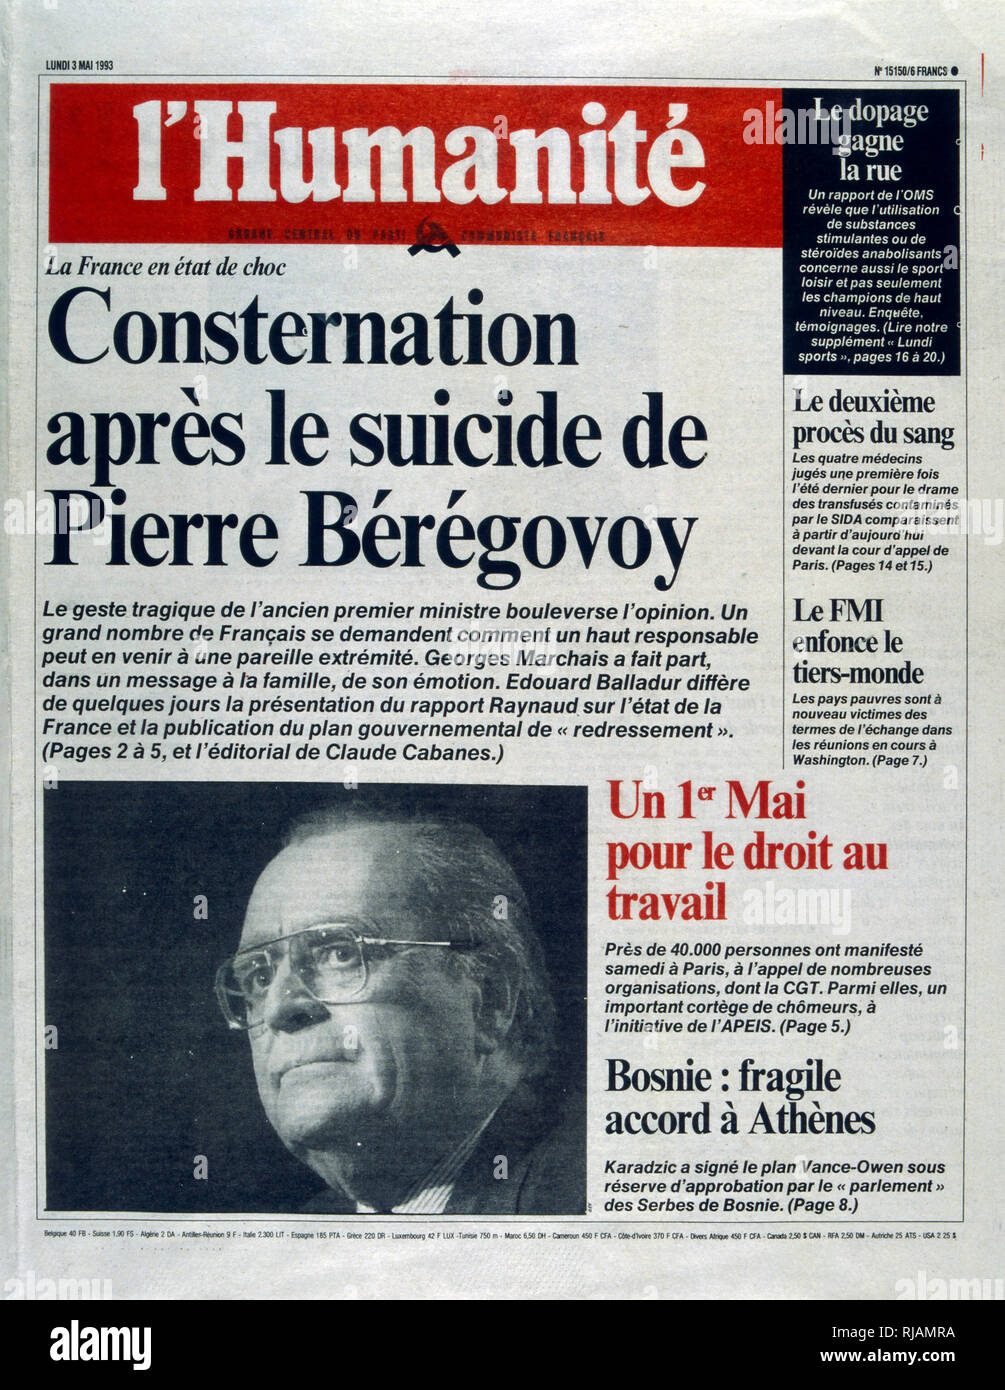 Cover of the French publication 'L'Humanite' after the suicide of Pierre Beregovoy, May 1993. Pierre Eugene Beregovoy (1925 - 1 May 1993) was a French politician who served as Prime Minister of France under President Francois Mitterrand from 2 April 1992 to 29 March 1993. He committed suicide. His successor as Prime Minister, Edouard Balladur, is seen leaving the funeral in Nevers. - Stock Image